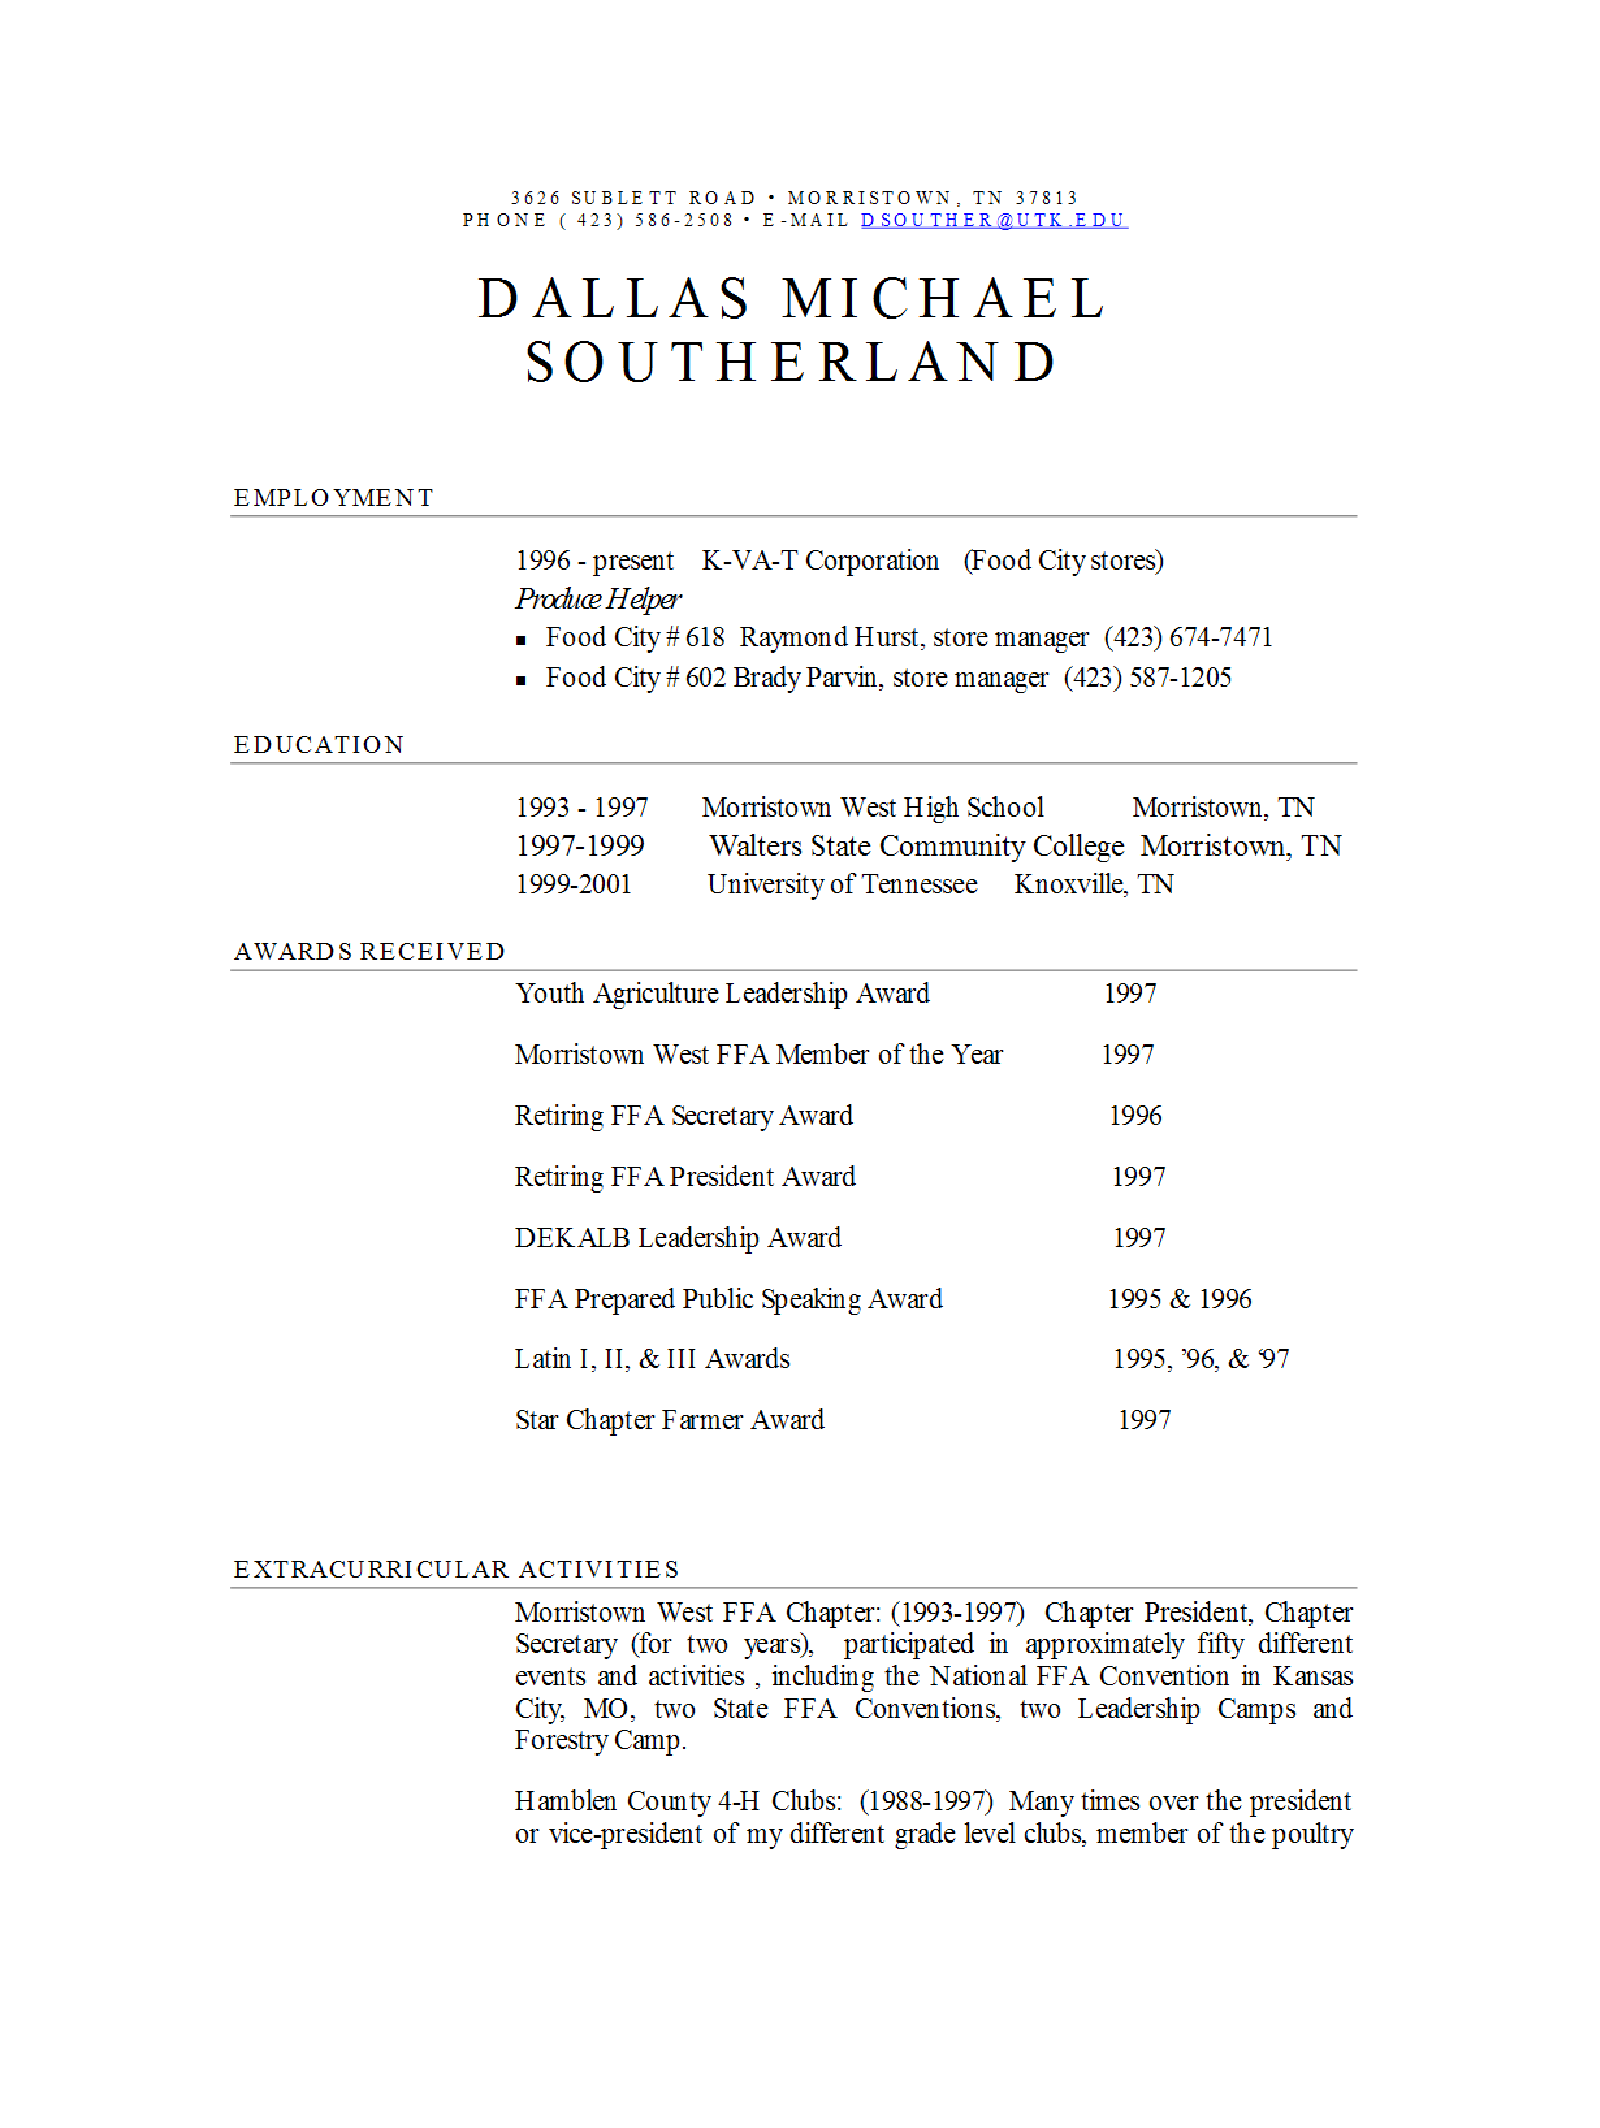 Copy of Dallas Michael Southerland Resume1.png